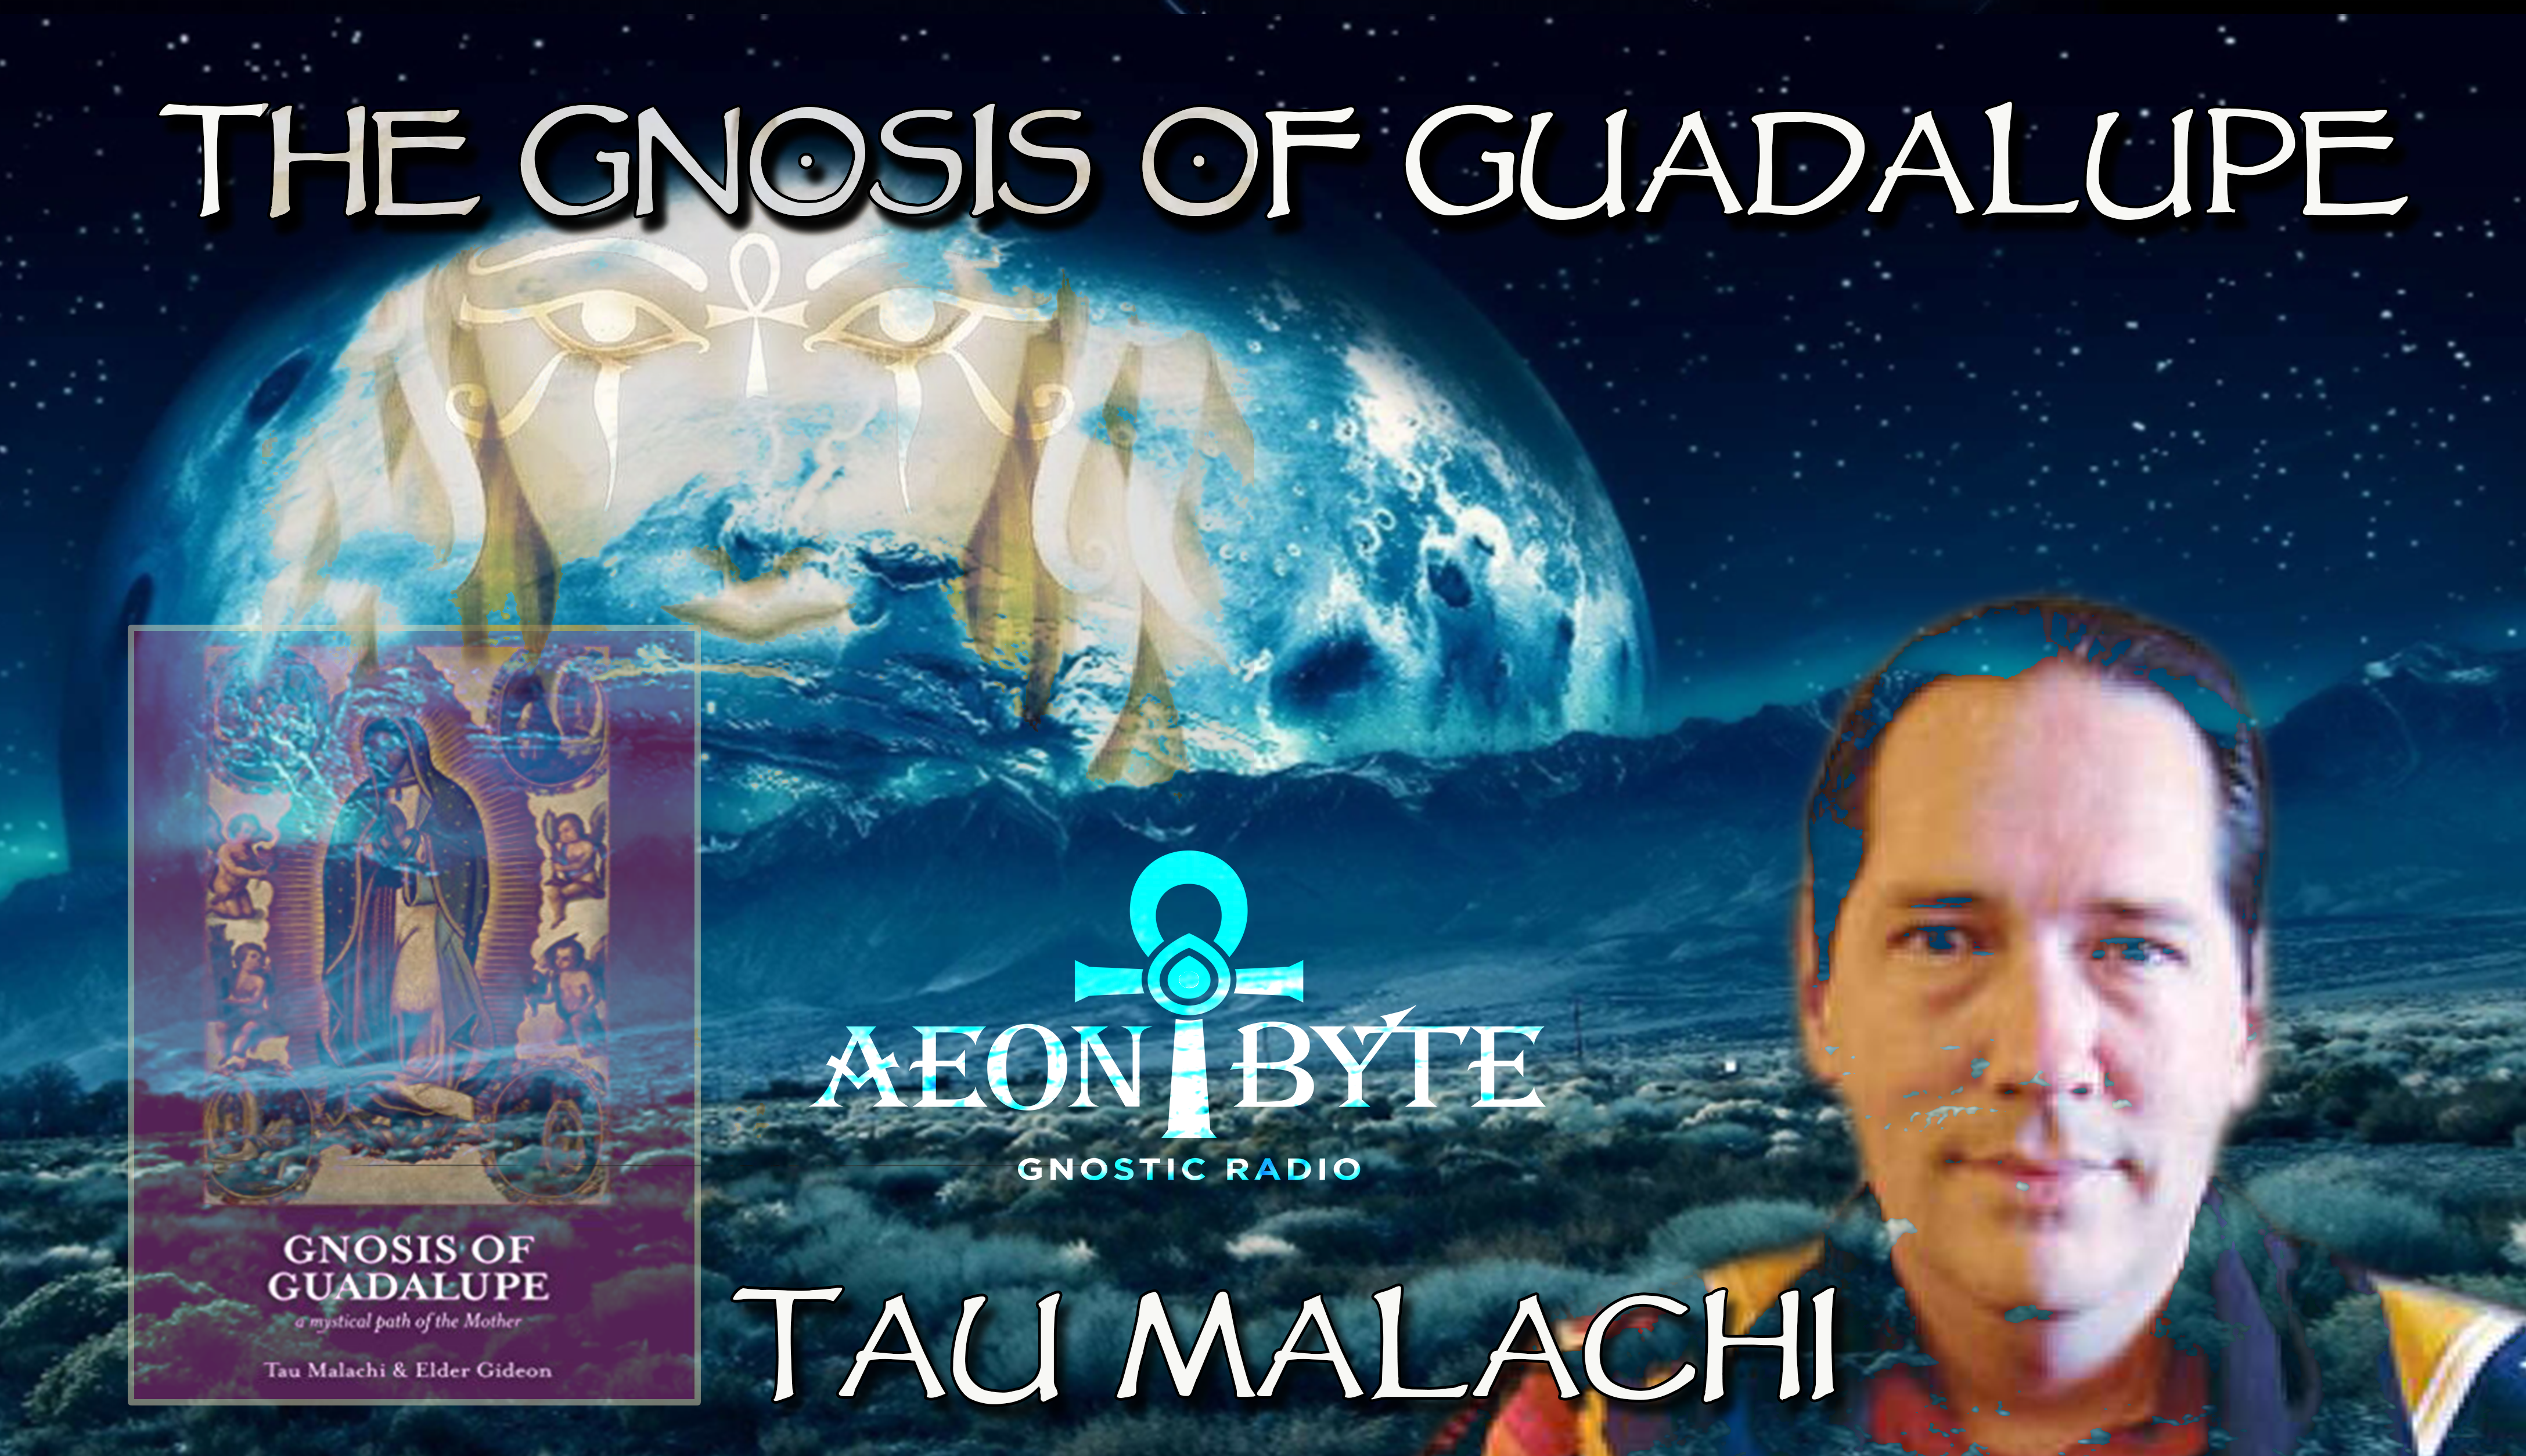 Picture of Tau Malachi and his book Gnosis of Guadalupe